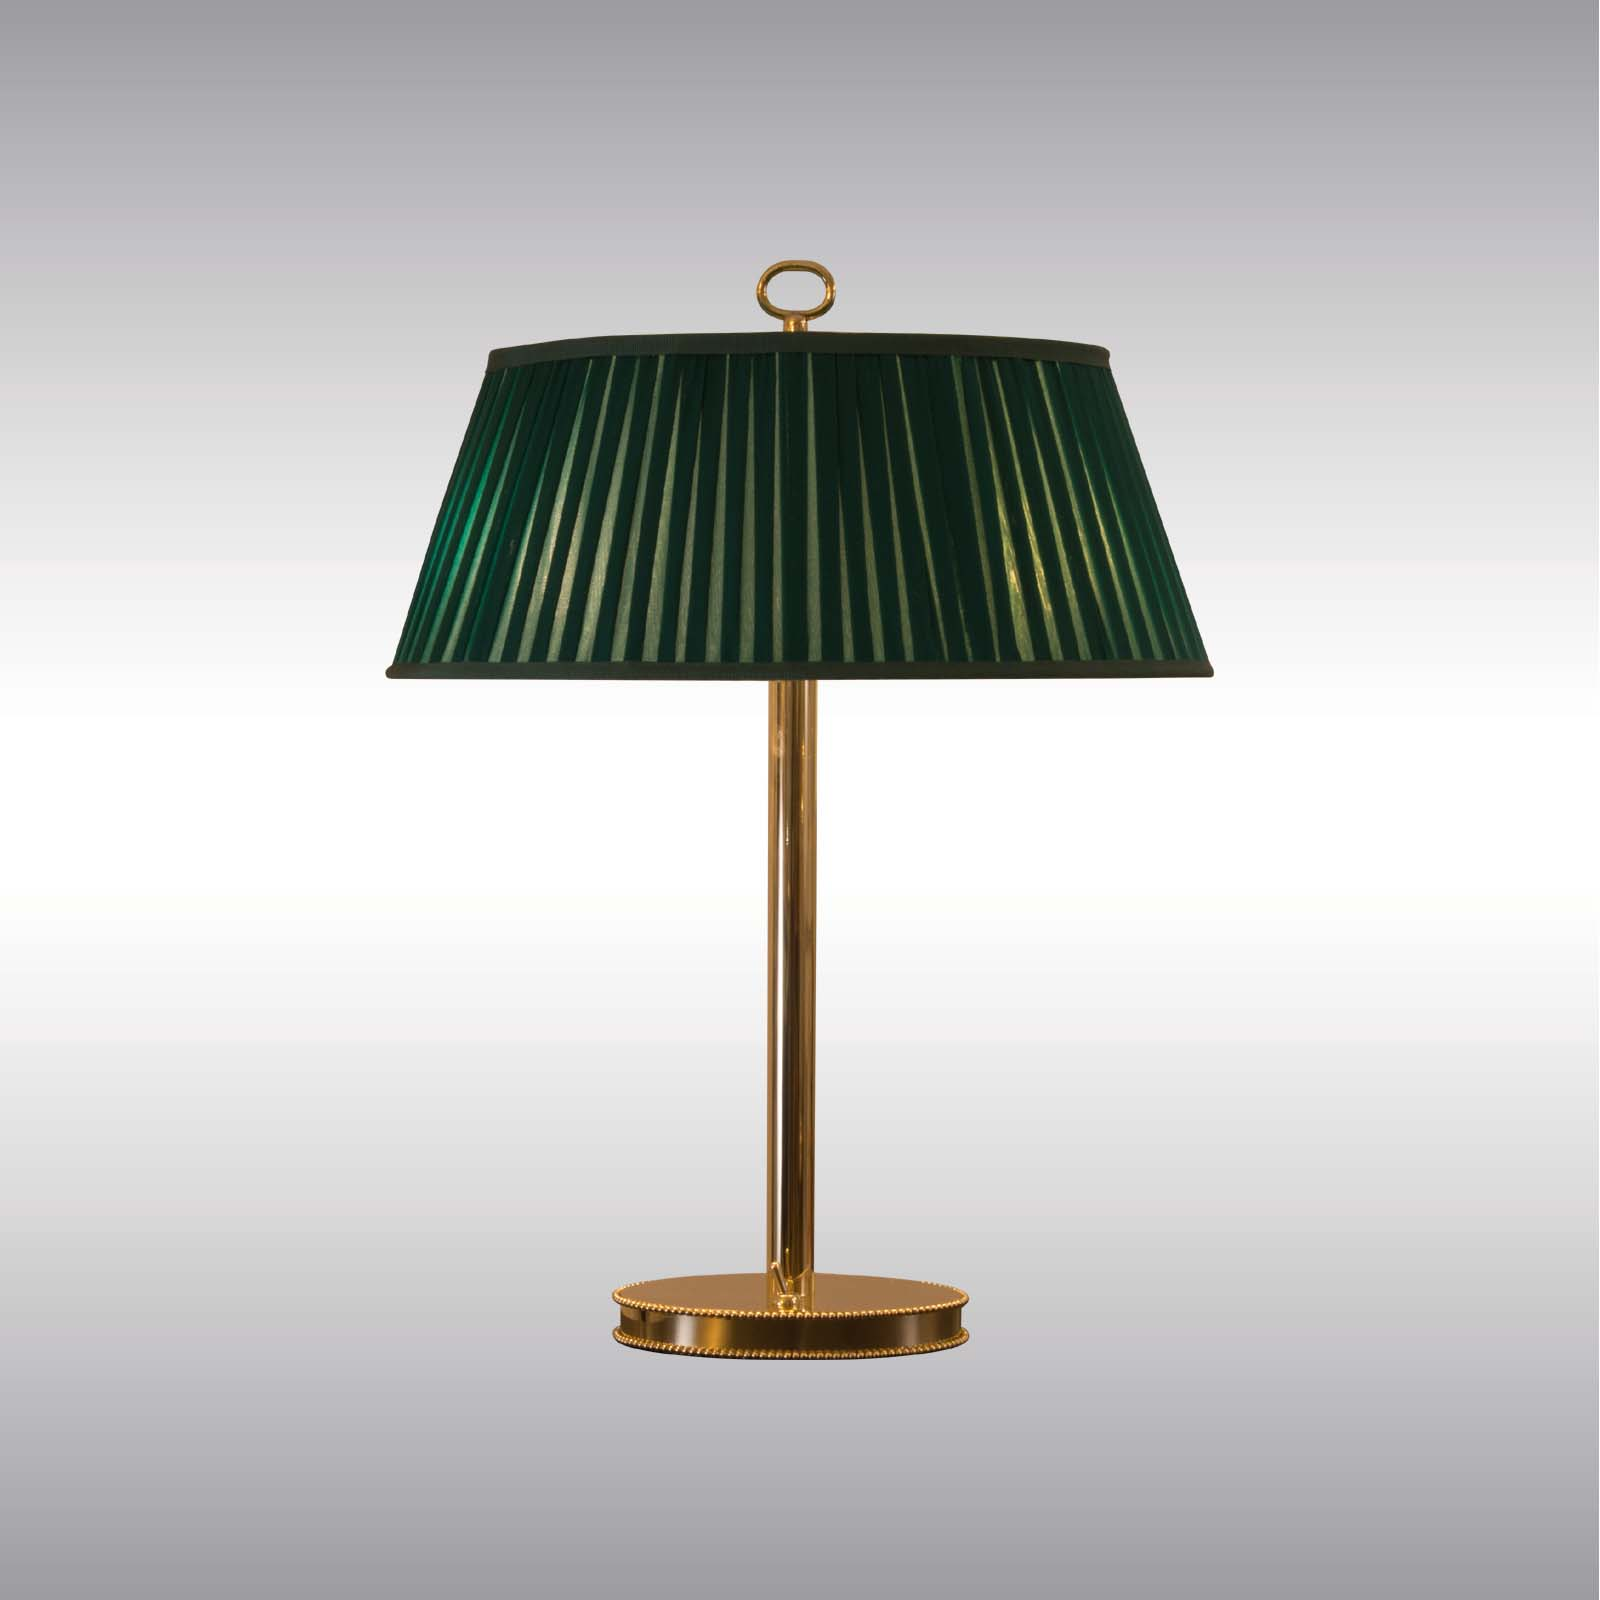 nts with of gratograt green having bankers secret shade elegant desk fans to banker lighting an photos ceiling lamp luxury and glass ingre